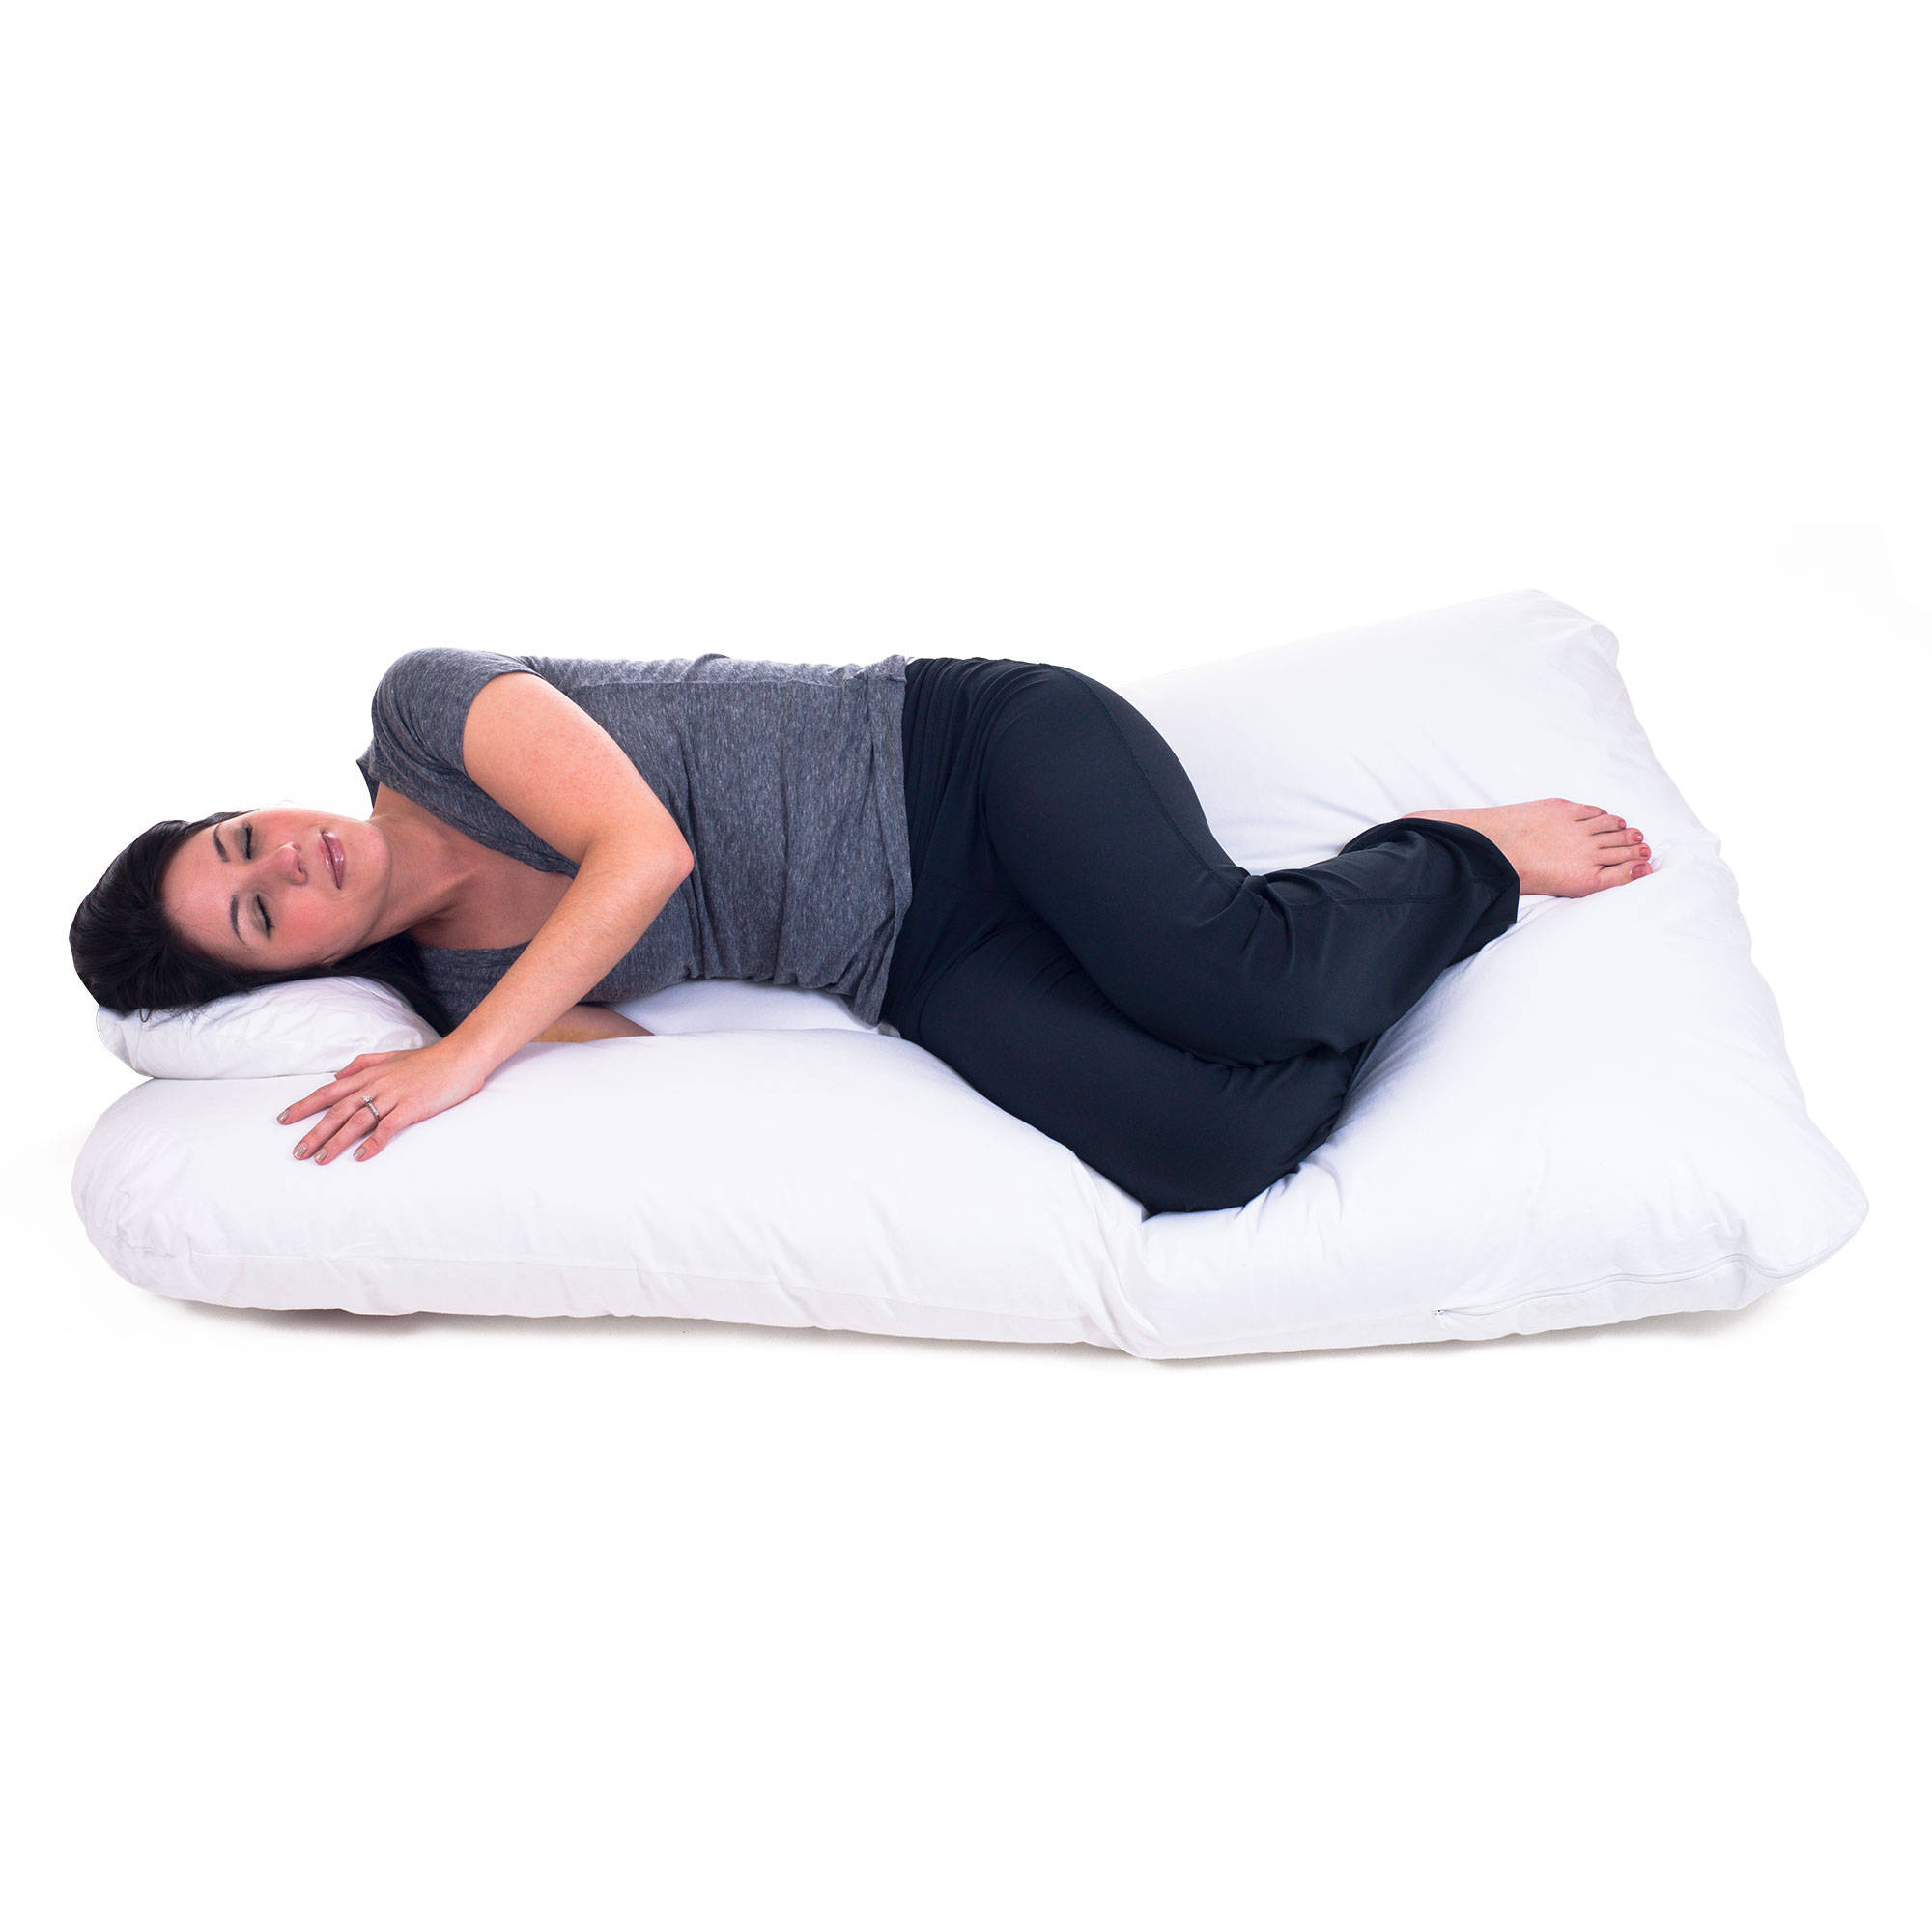 pregnancy pillow full body maternity pillow with contoured ushape by bluestone back support walmartcom